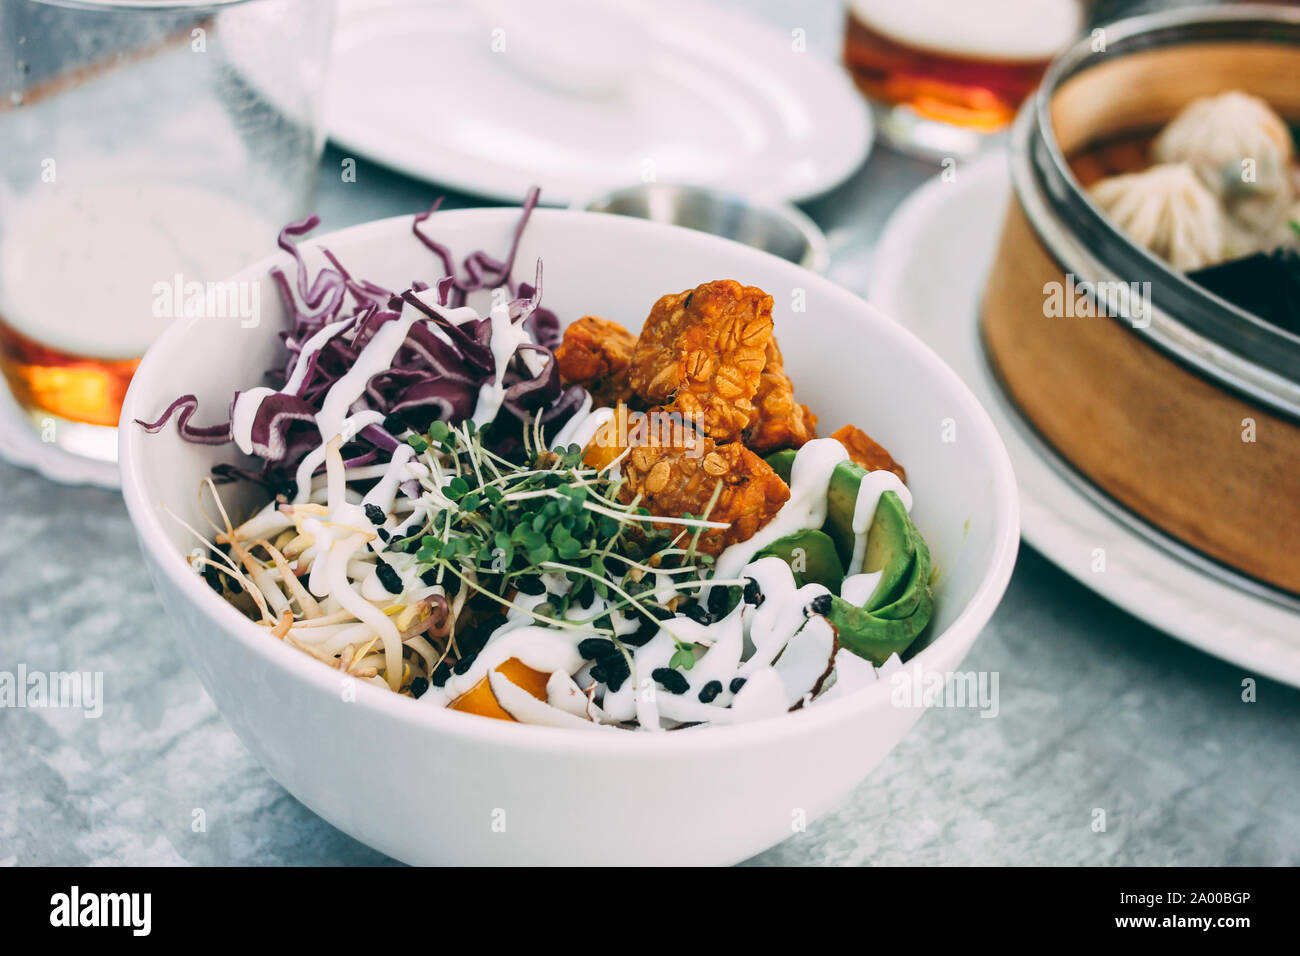 Pan-Asian food - the vegetable salad bowl and different dim sums. Lunch for two with beer Stock Photo